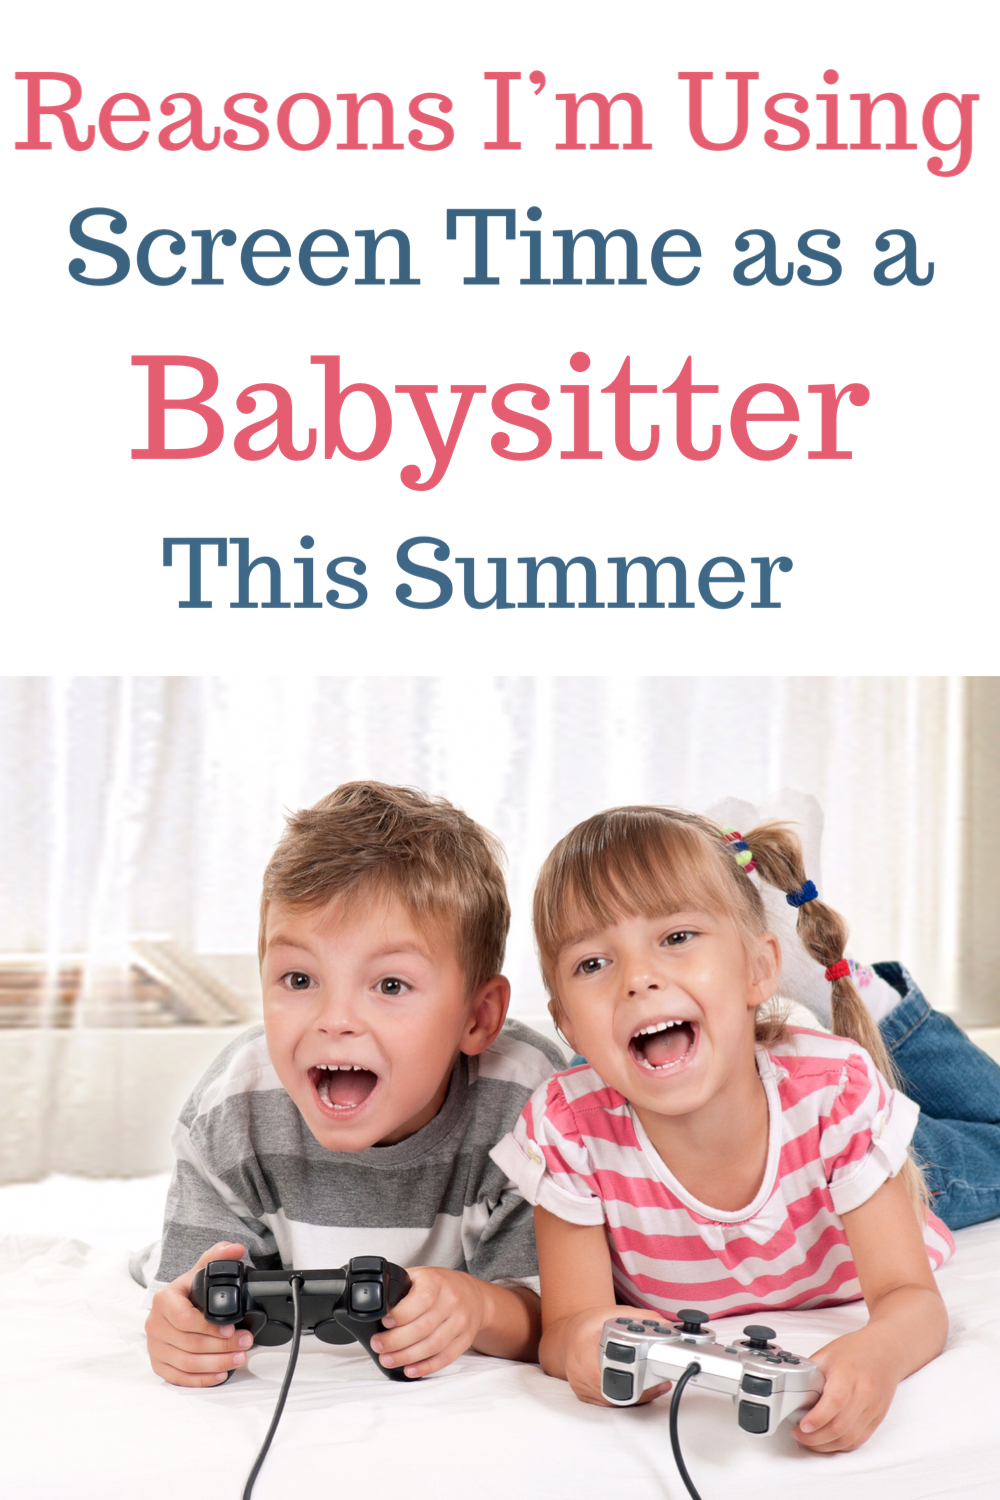 Reasons I'm using screen time as a babysitter this summer